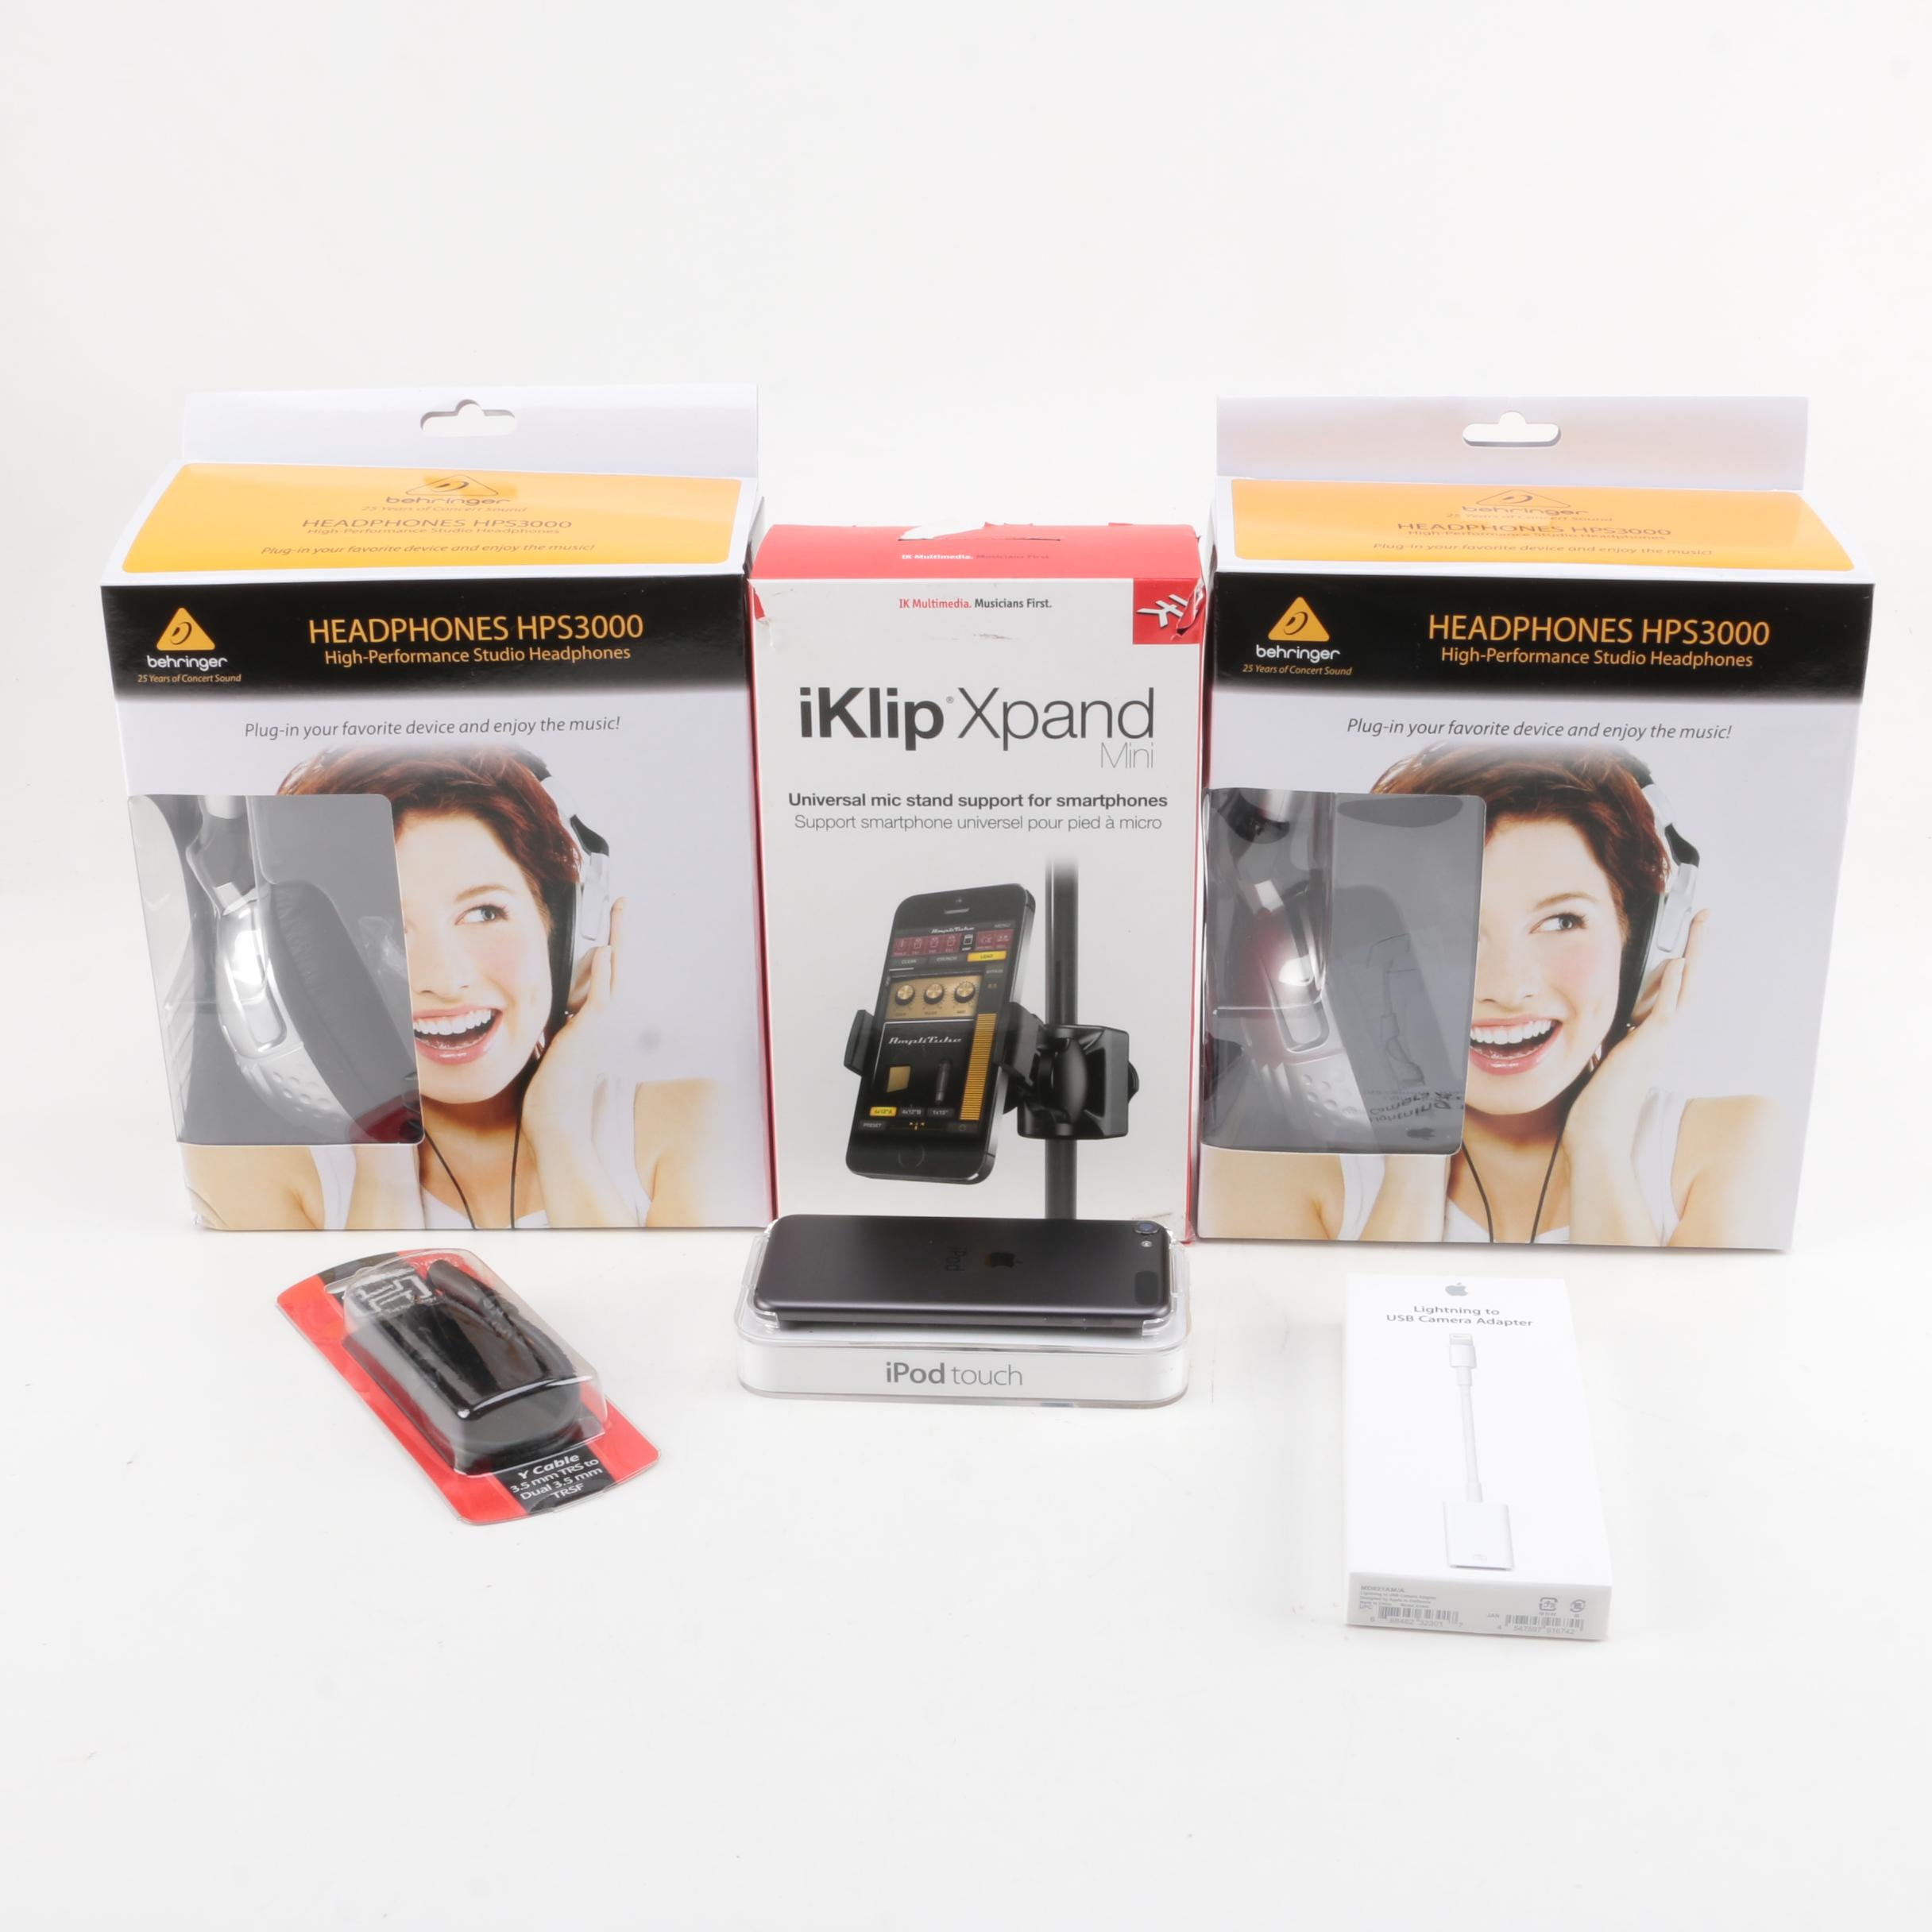 IPod Touch and Packaged Accessories